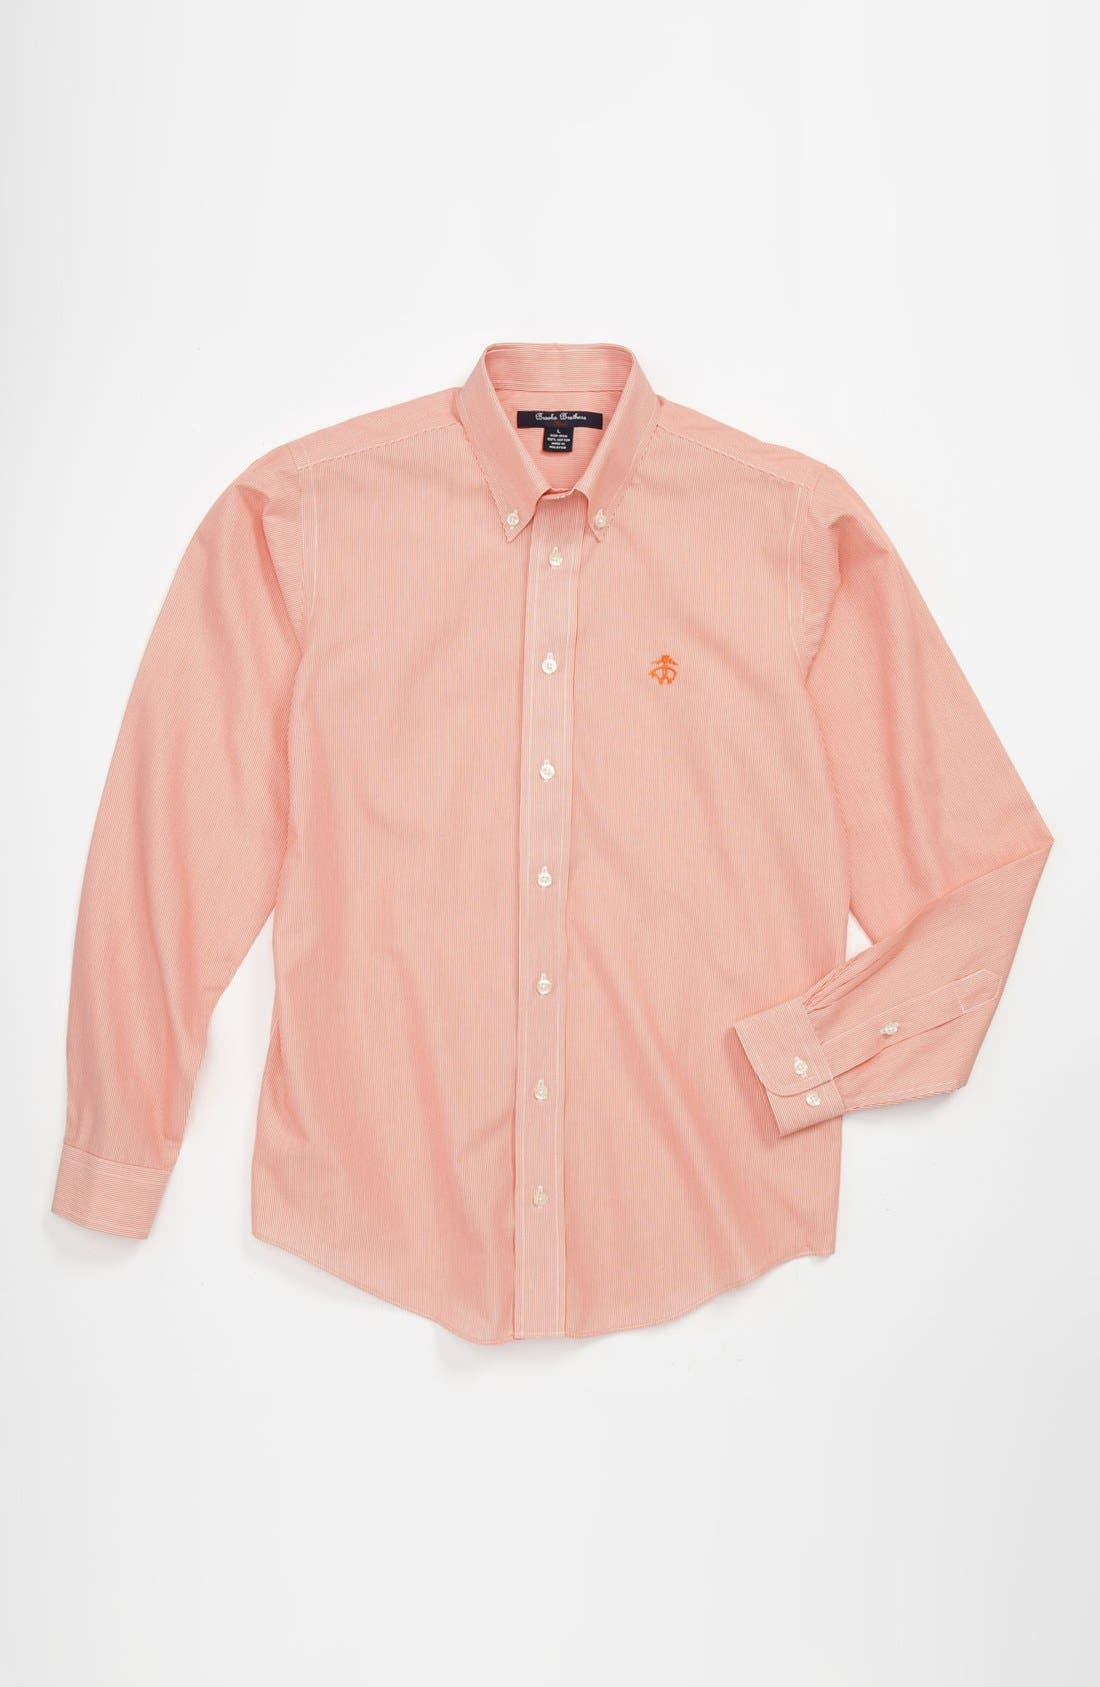 Alternate Image 1 Selected - Brooks Brothers Non-Iron Sport Shirt (Big Boys)